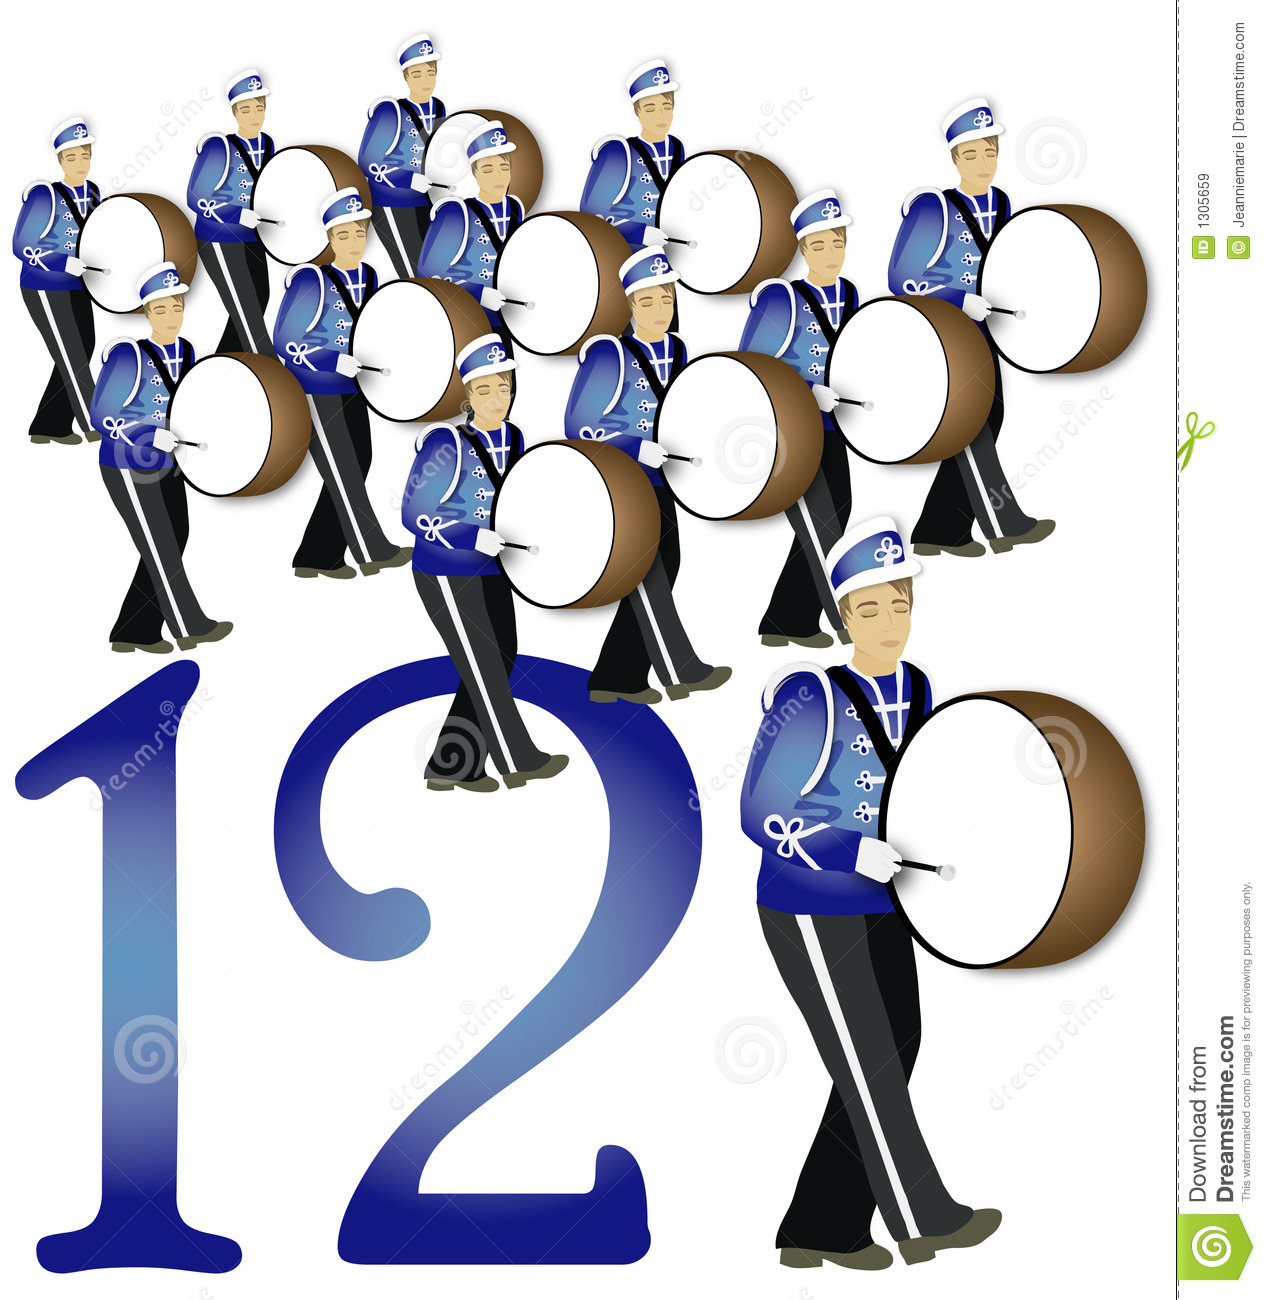 12 days of christmas 12 drummers drumming - When Are The Twelve Days Of Christmas